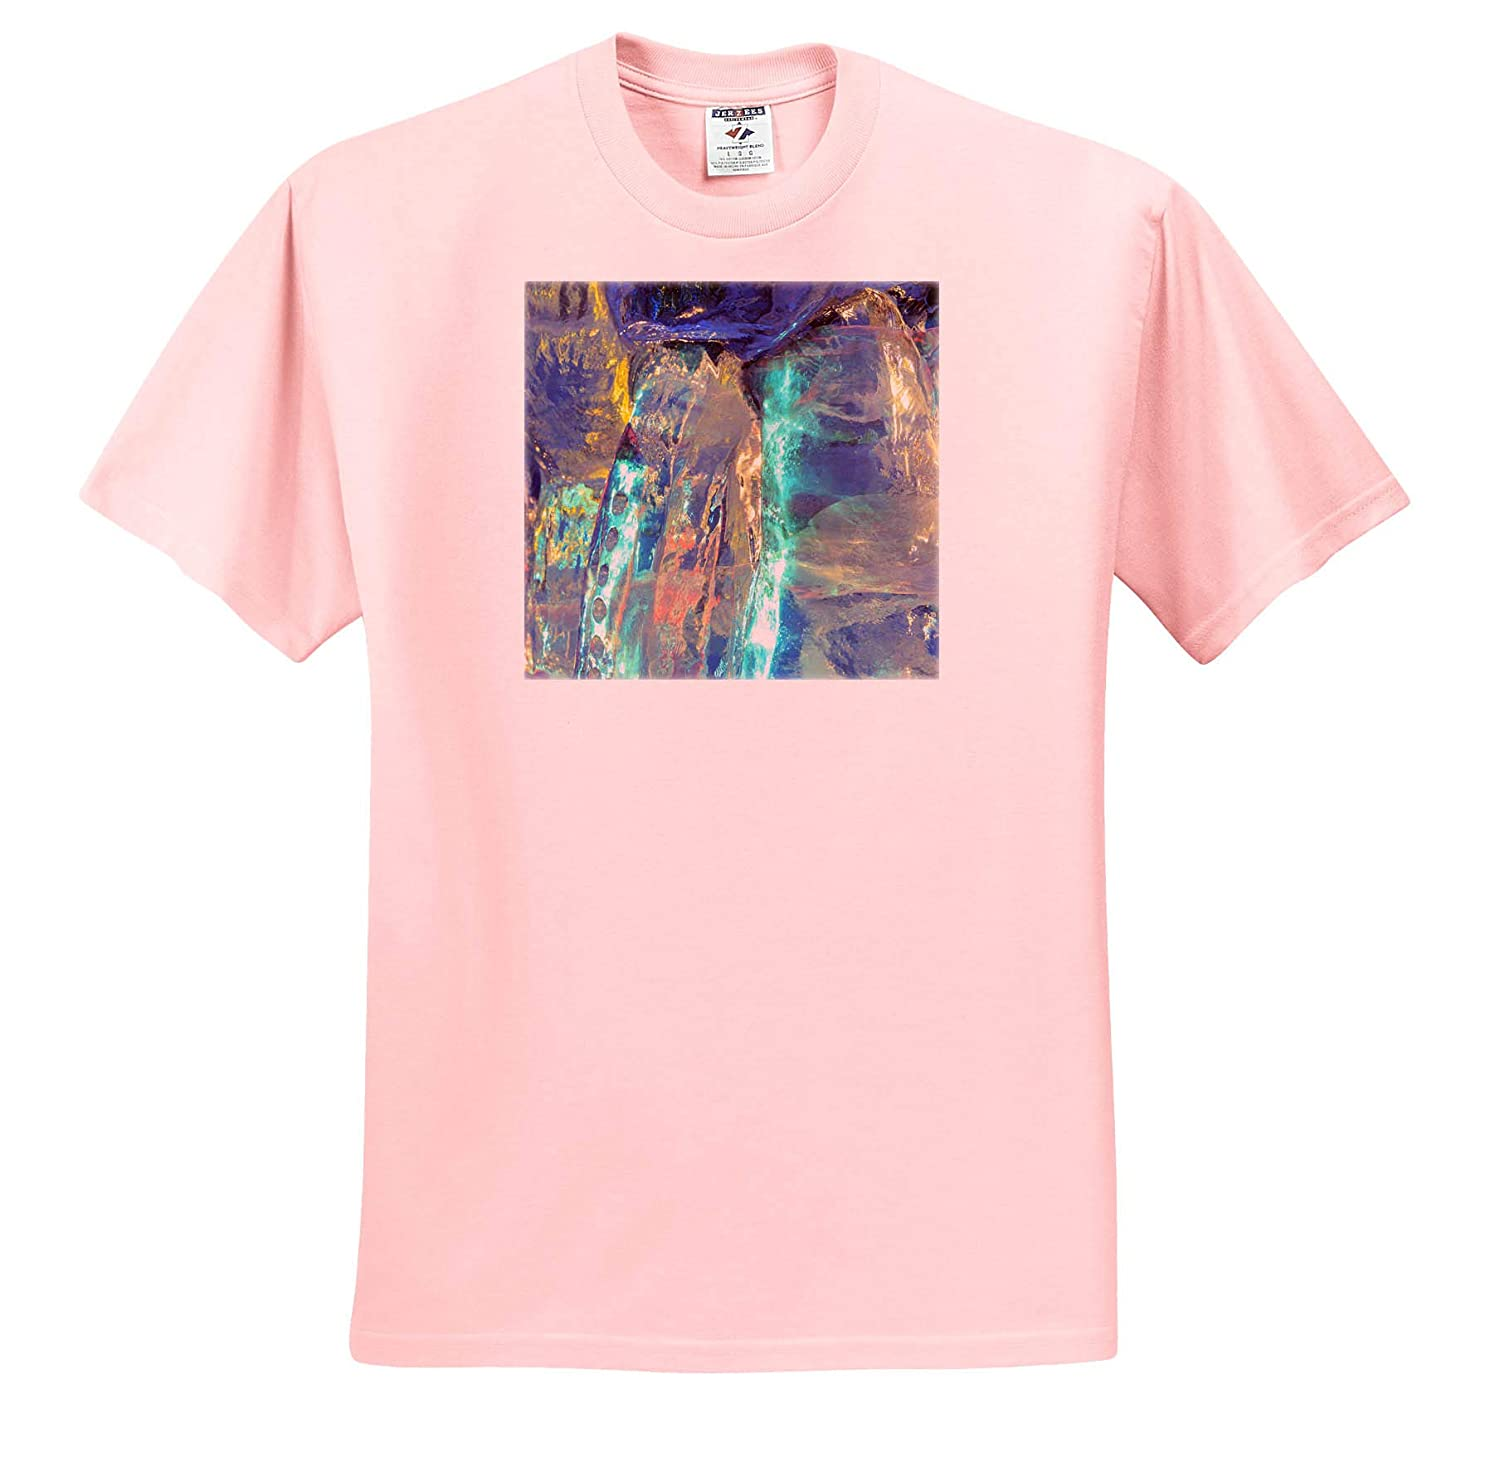 Abstracts Colorful Patterns and Textures of ice Blocks 3dRose Danita Delimont ts/_314529 - Adult T-Shirt XL